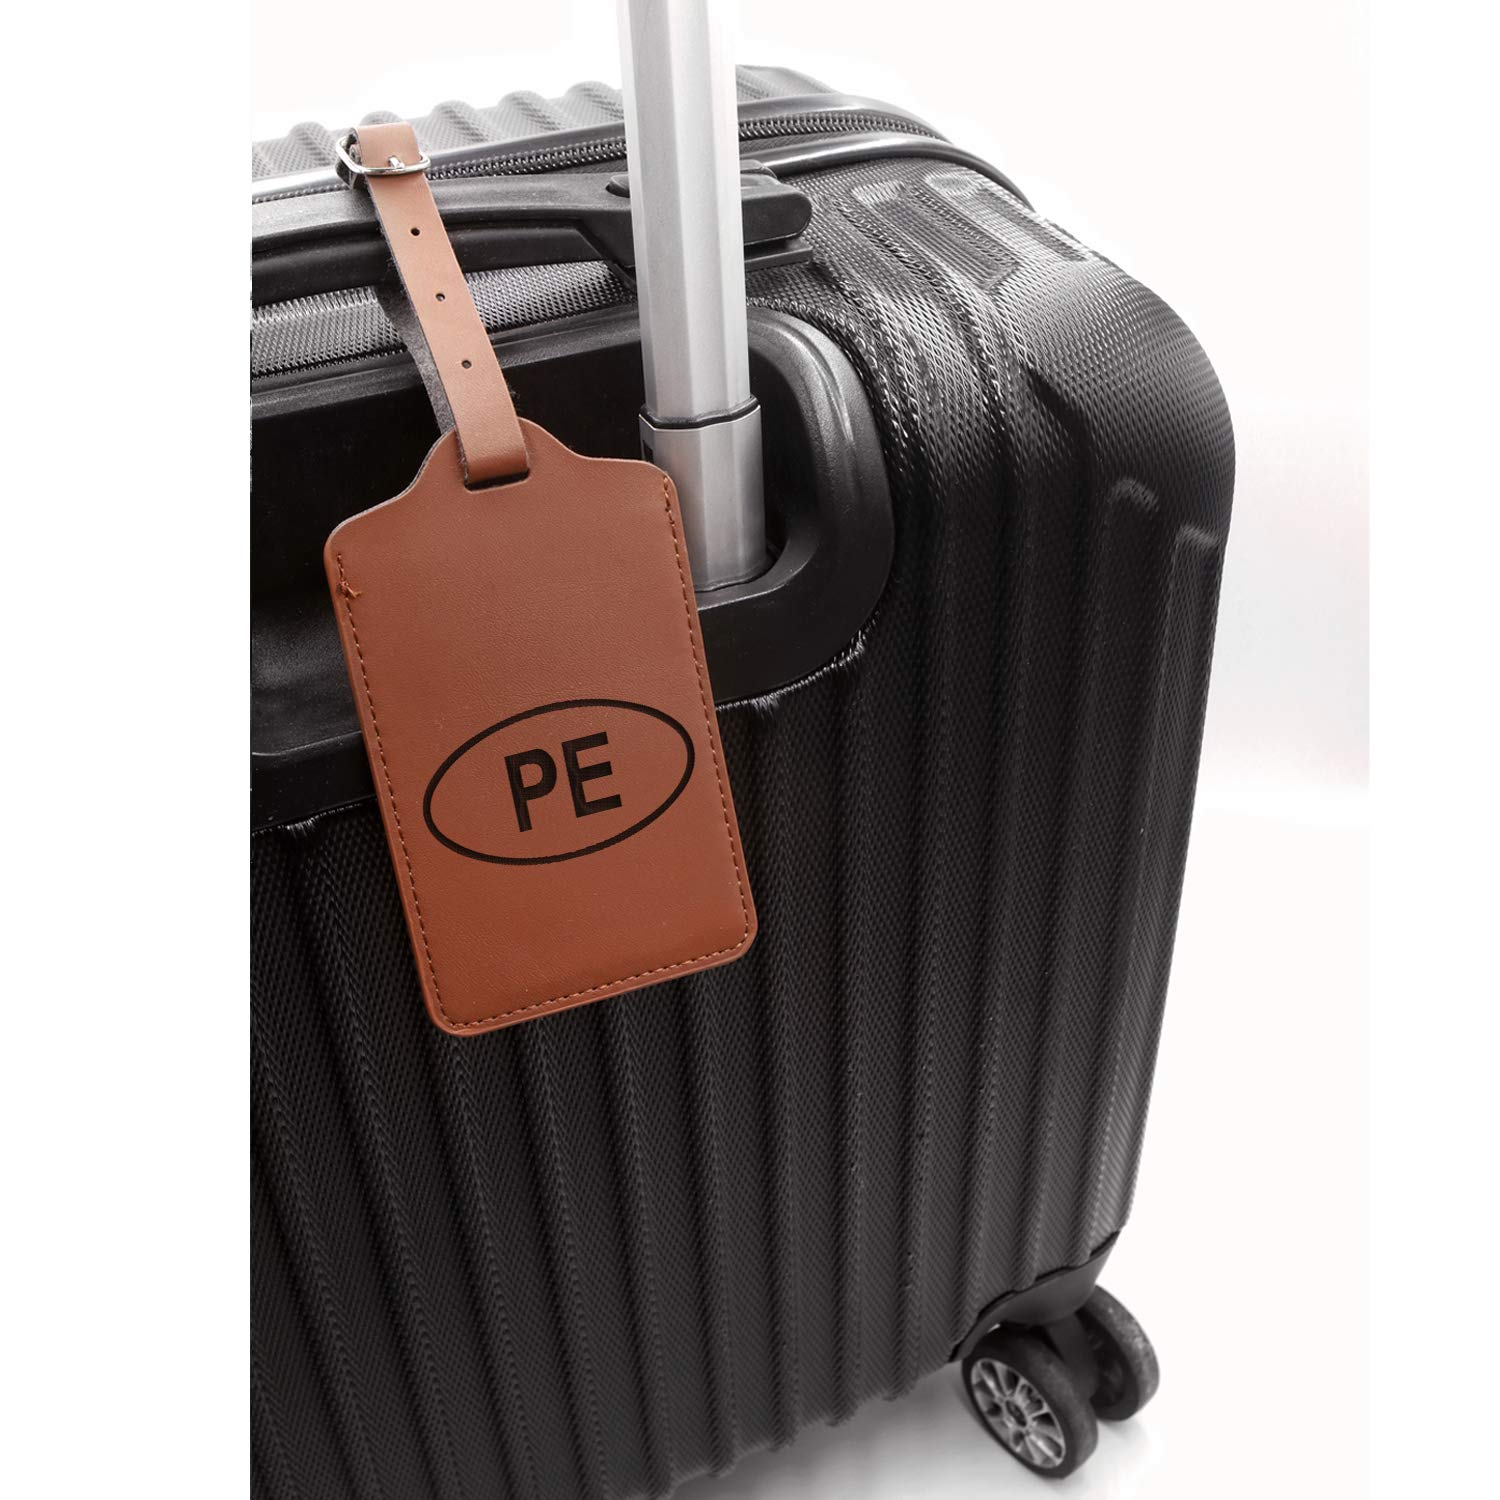 Lima Peru Stickers Engraved Synthetic Pu Leather Luggage Tag - United States Standard London Tan - Set Of 2 Handcrafted By Mastercraftsmen For Any Type Of Luggage